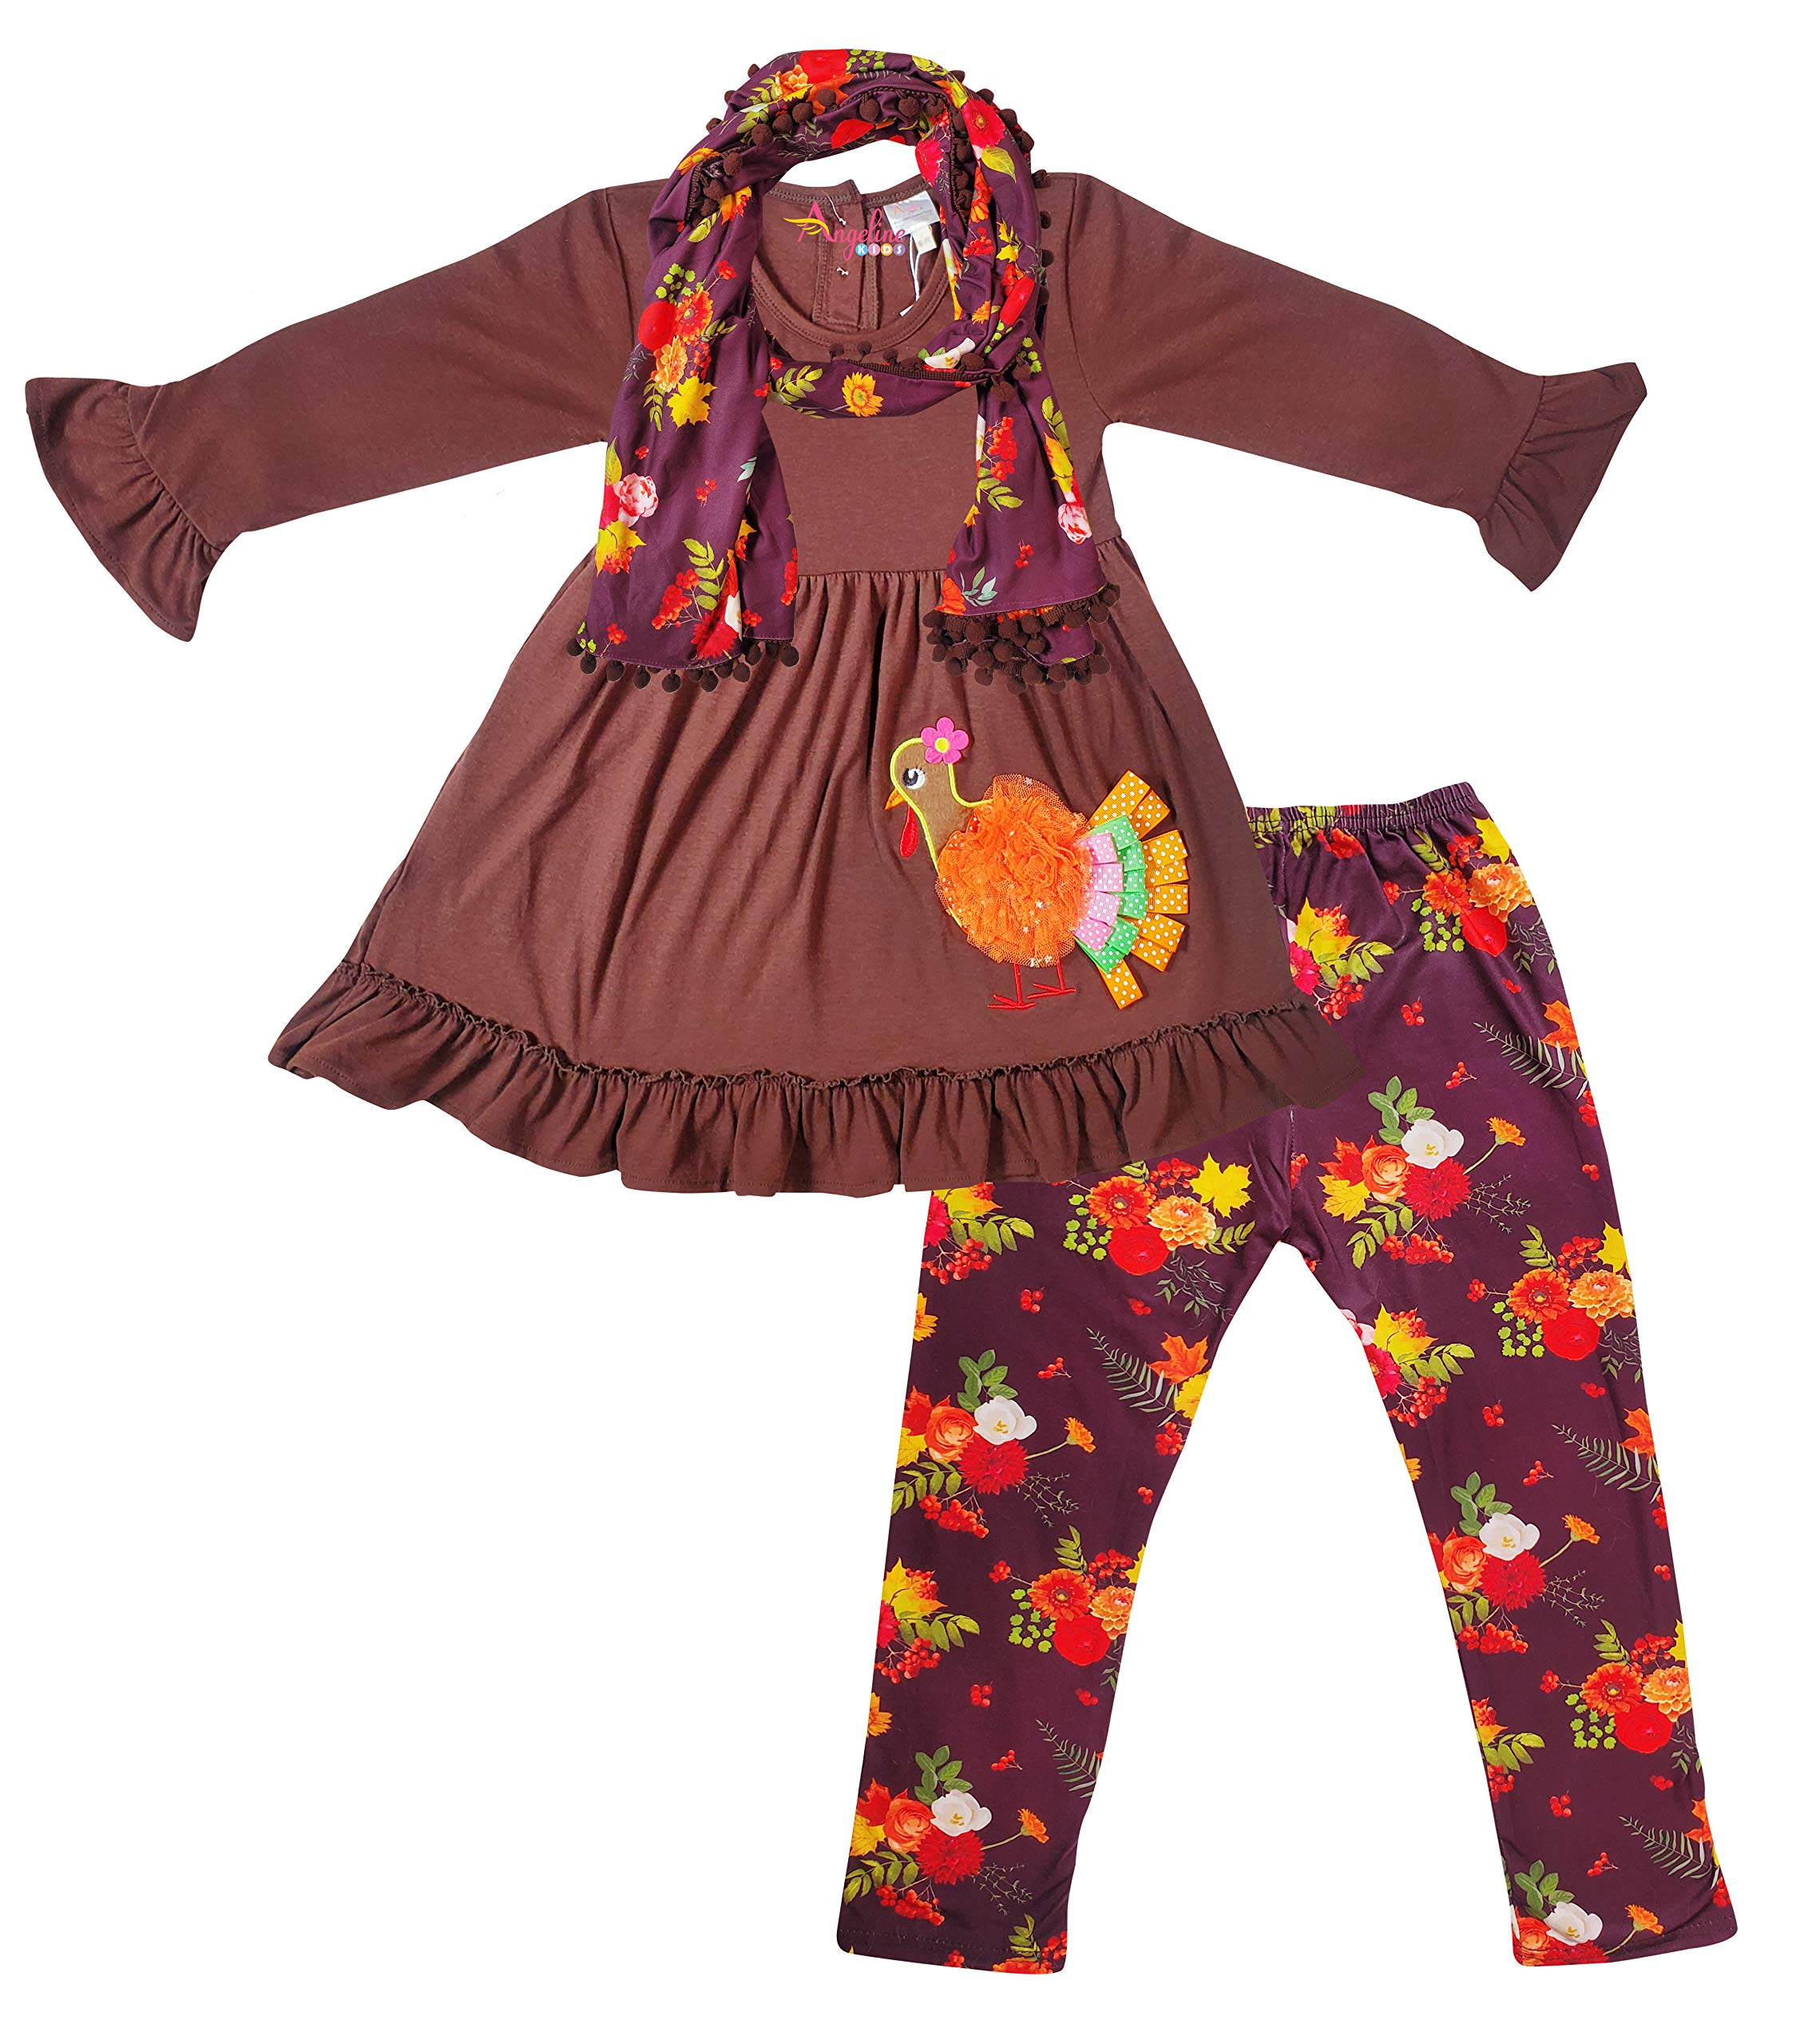 Little Girls Thanksgiving Outfit - Ribbon Turkey Vintage Floral Top Leggings Scarf Set 10/5XL by Angeline